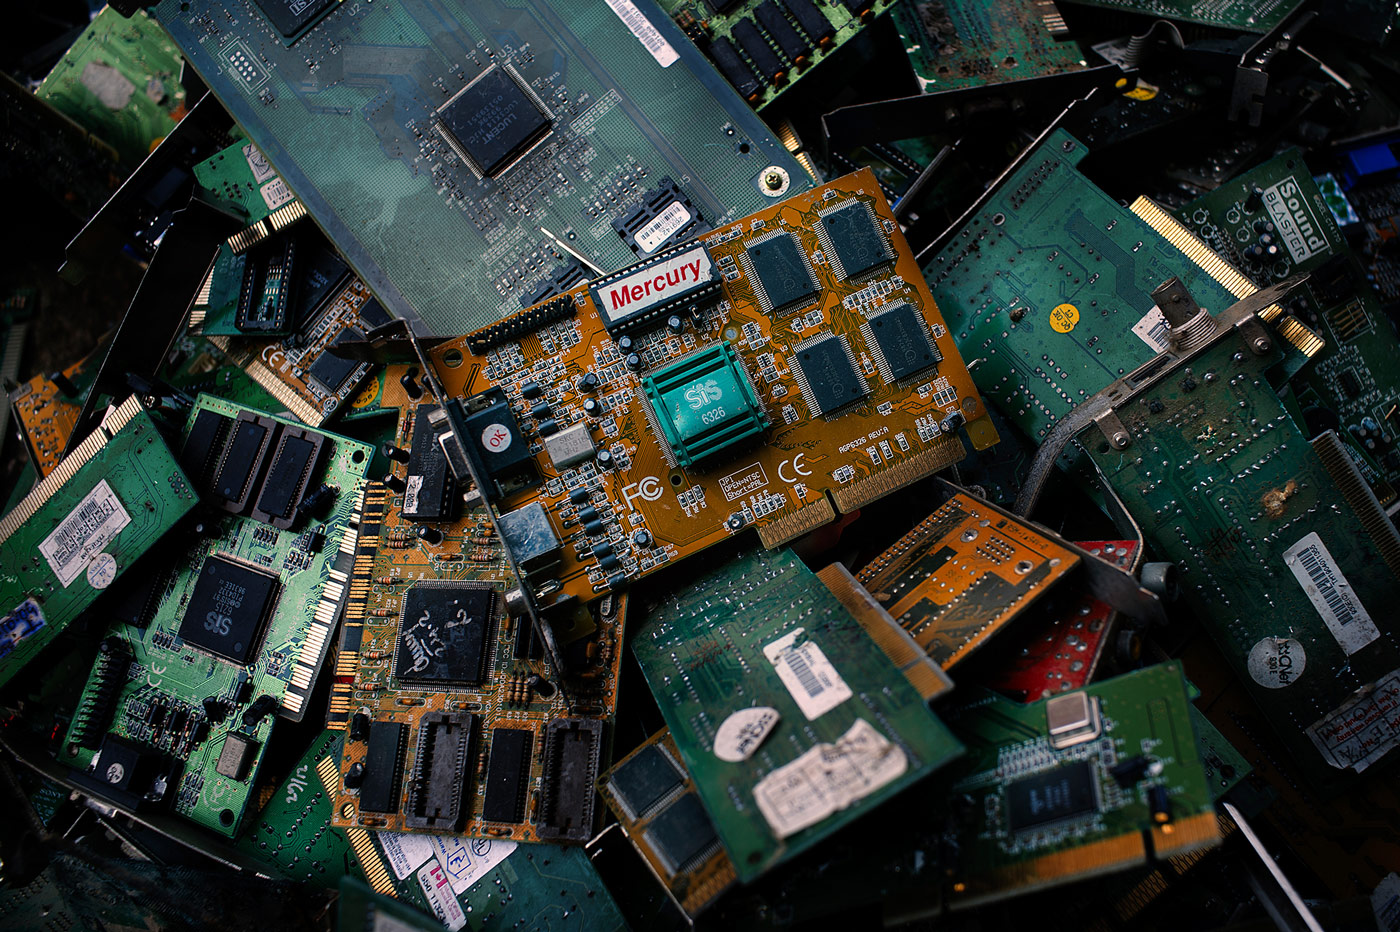 E Waste Recycling Machinery Circuit Board Scrap Computer Image Not Available